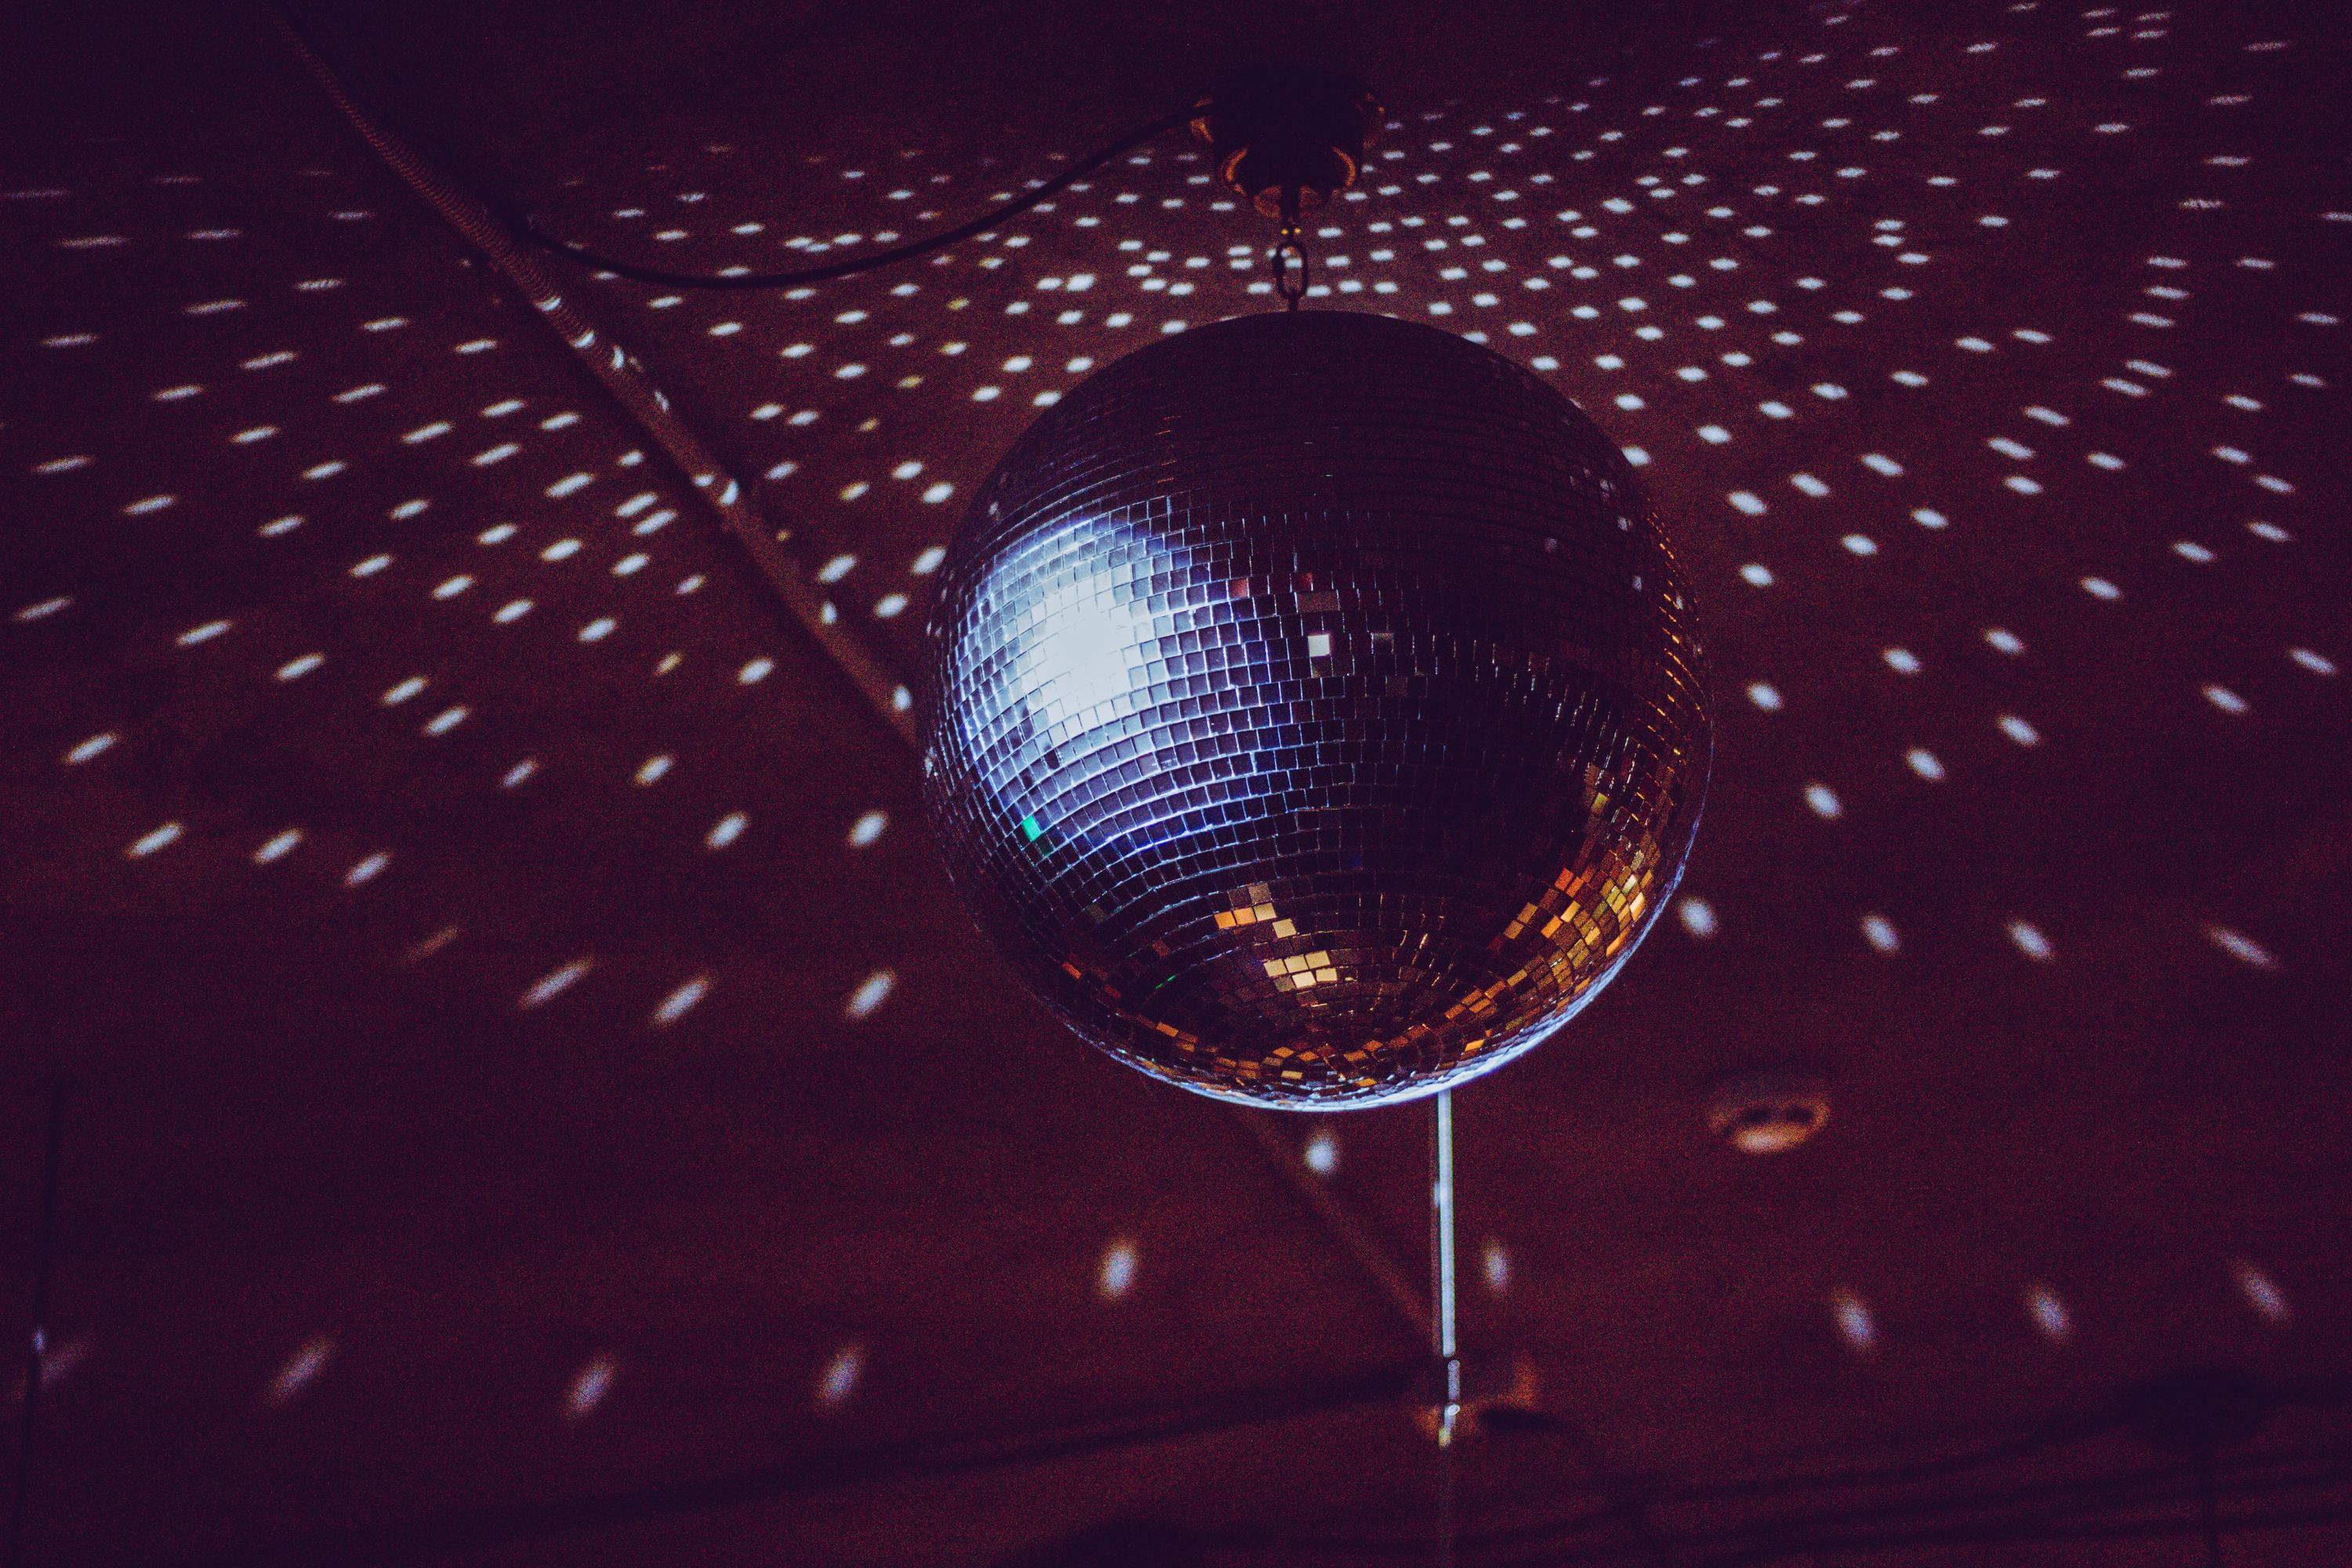 Disco ball, nightclub